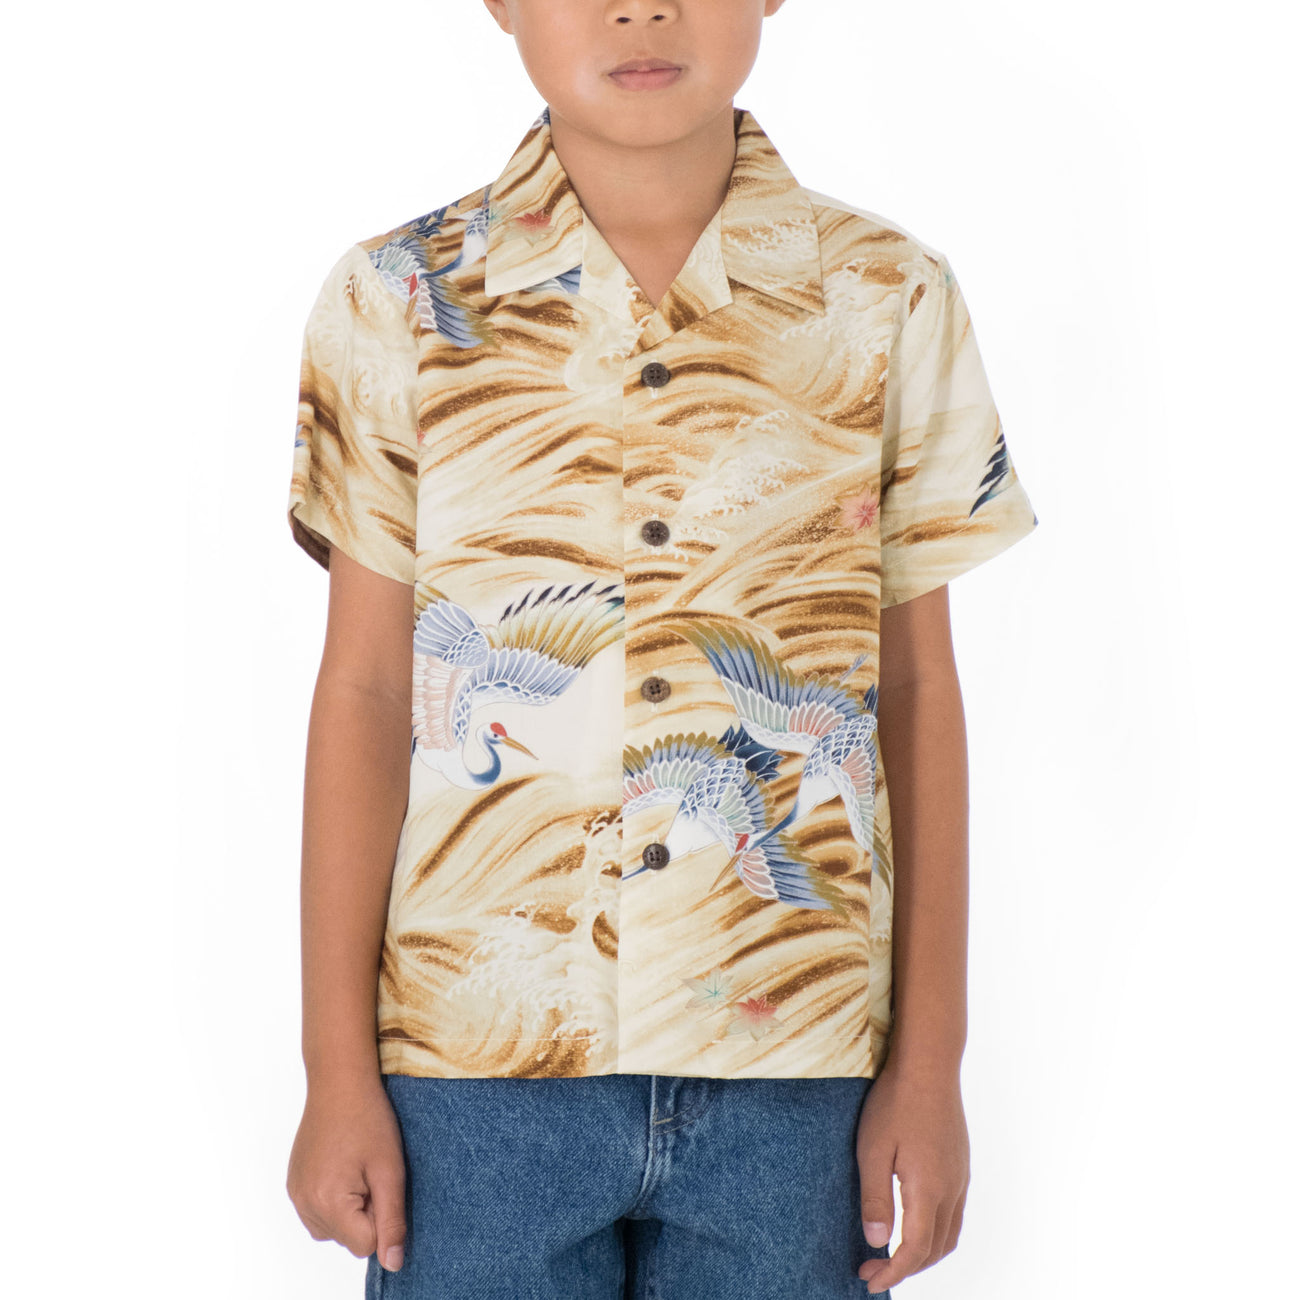 'IO BIRD TODDLER SHIRT